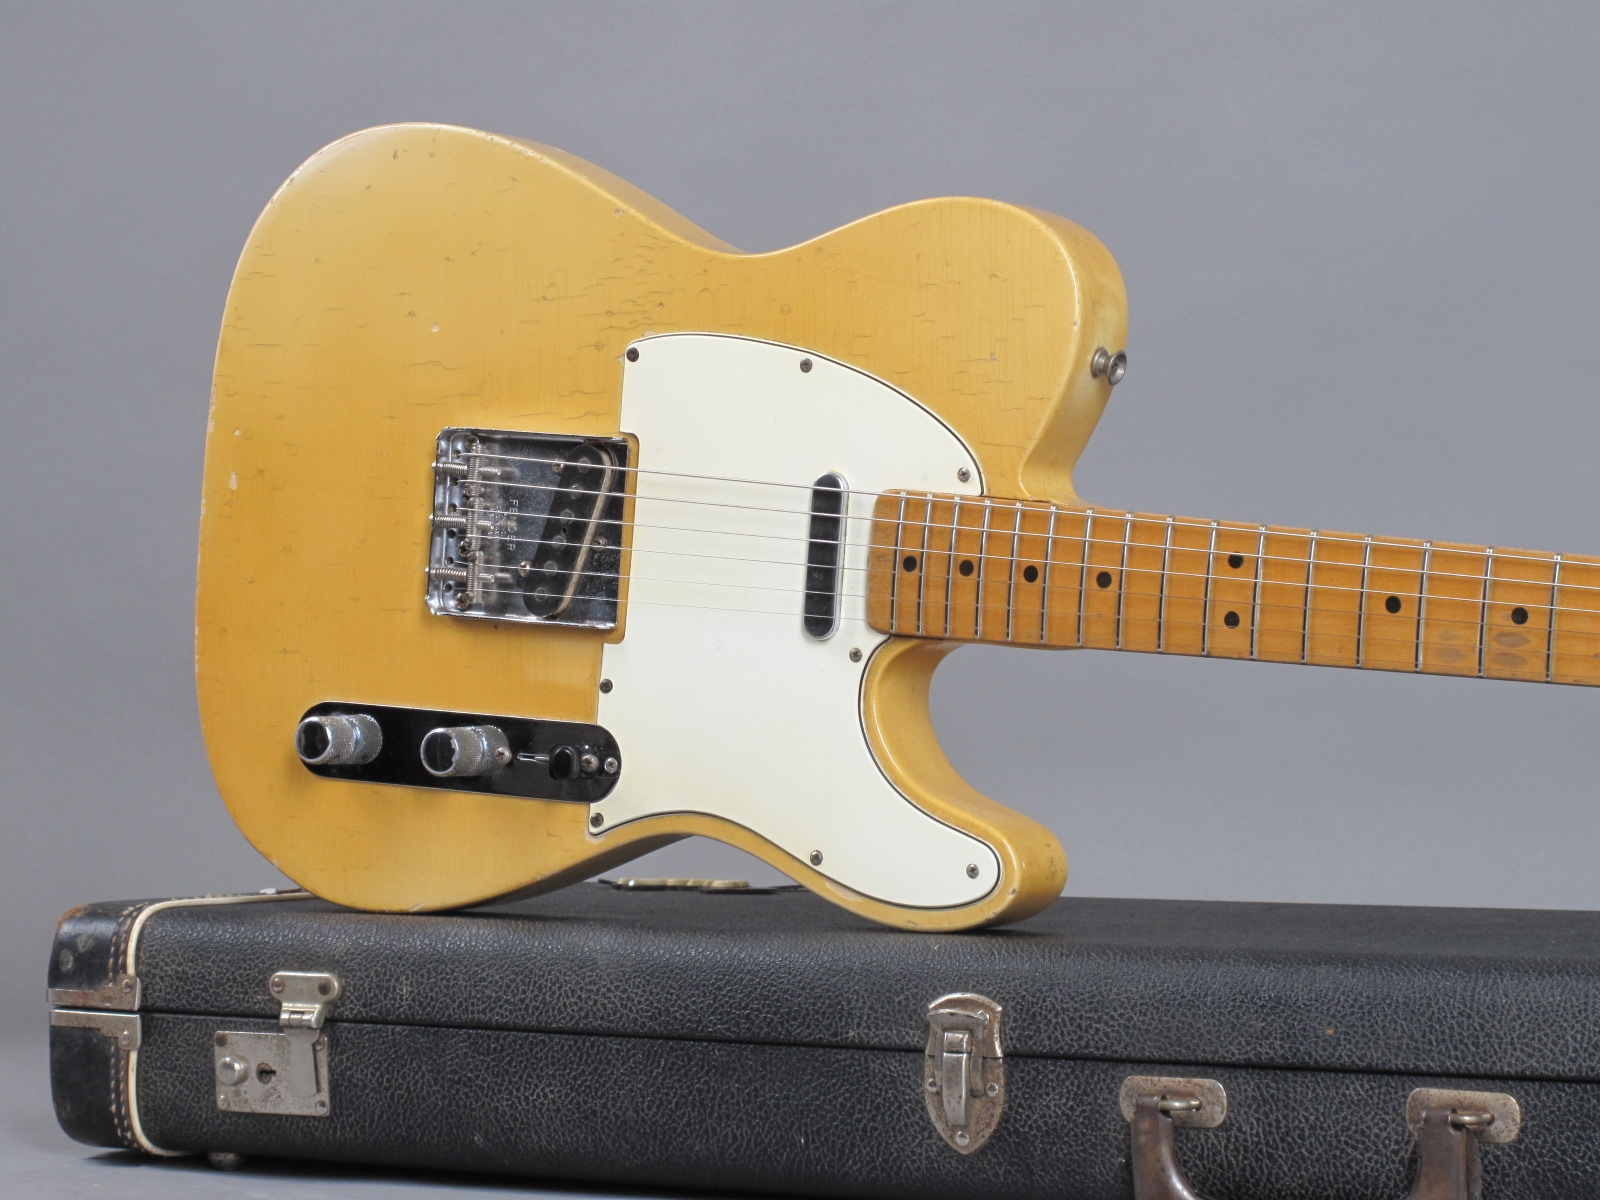 https://guitarpoint.de/app/uploads/products/1968-fender-telecaster-blond-lightweight-328-kg-2/1968-Fender-Telecaster-Blond-246382-19.jpg